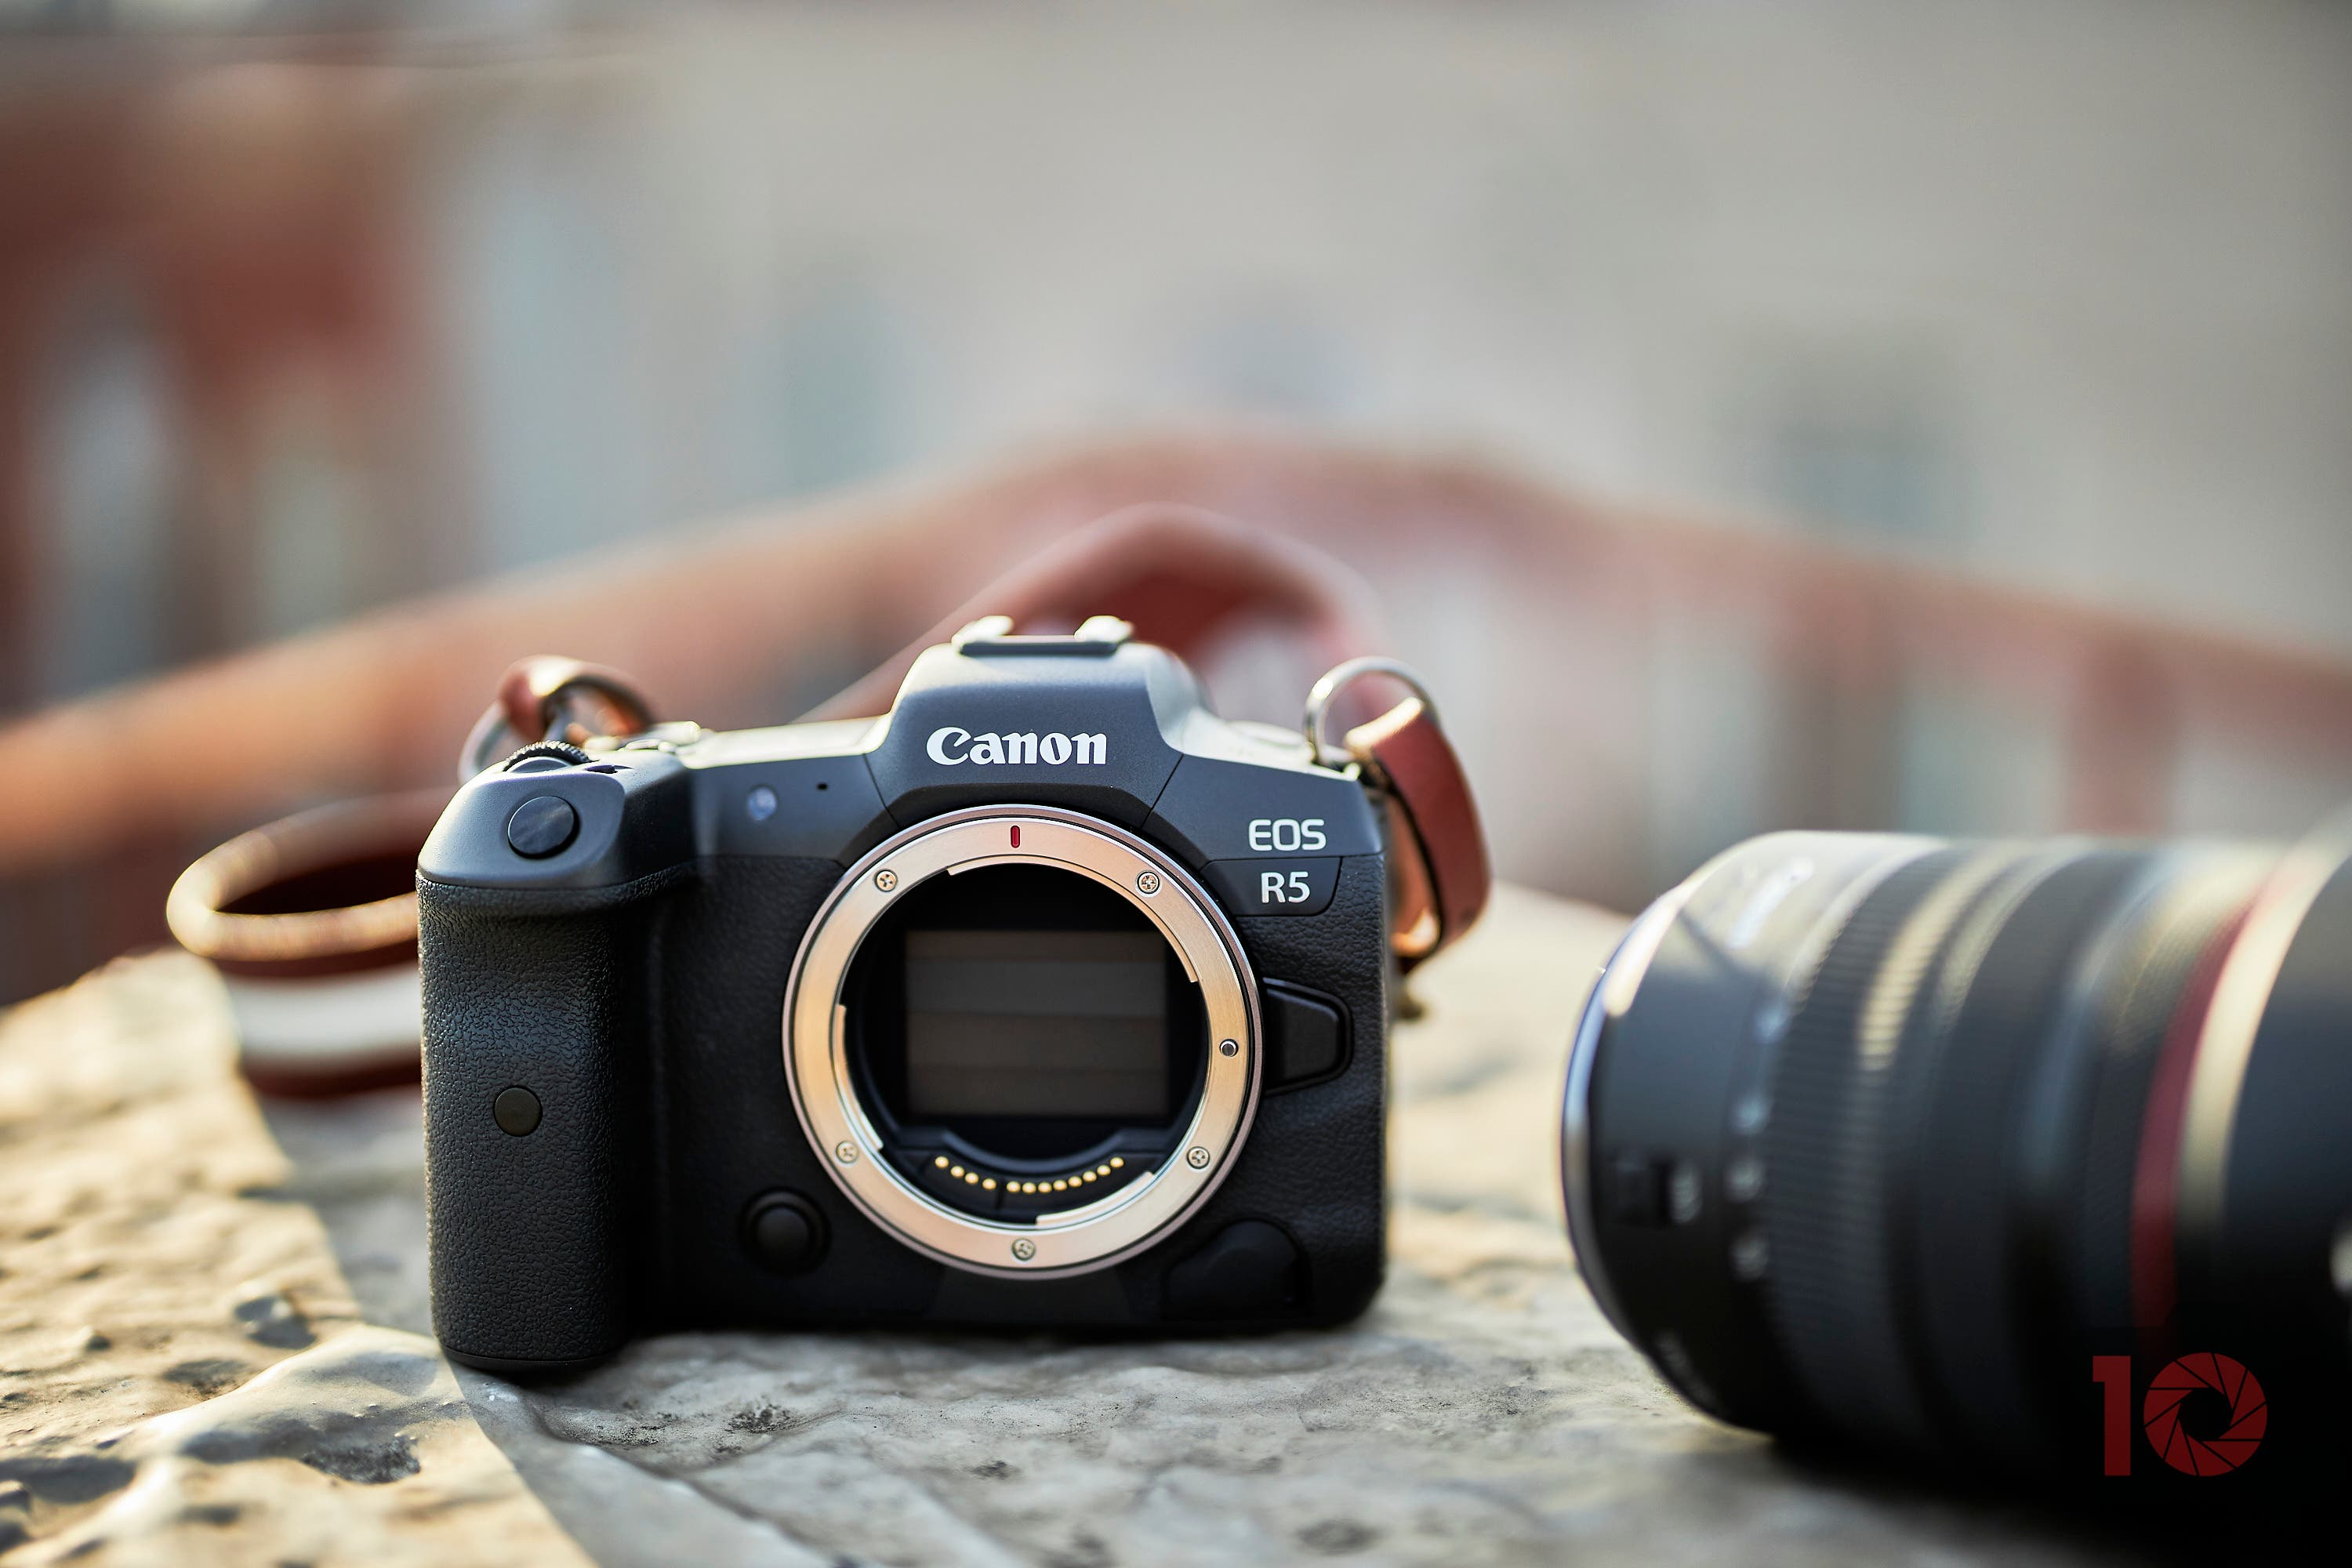 We Found Canon Gear at Tough to Beat Prices